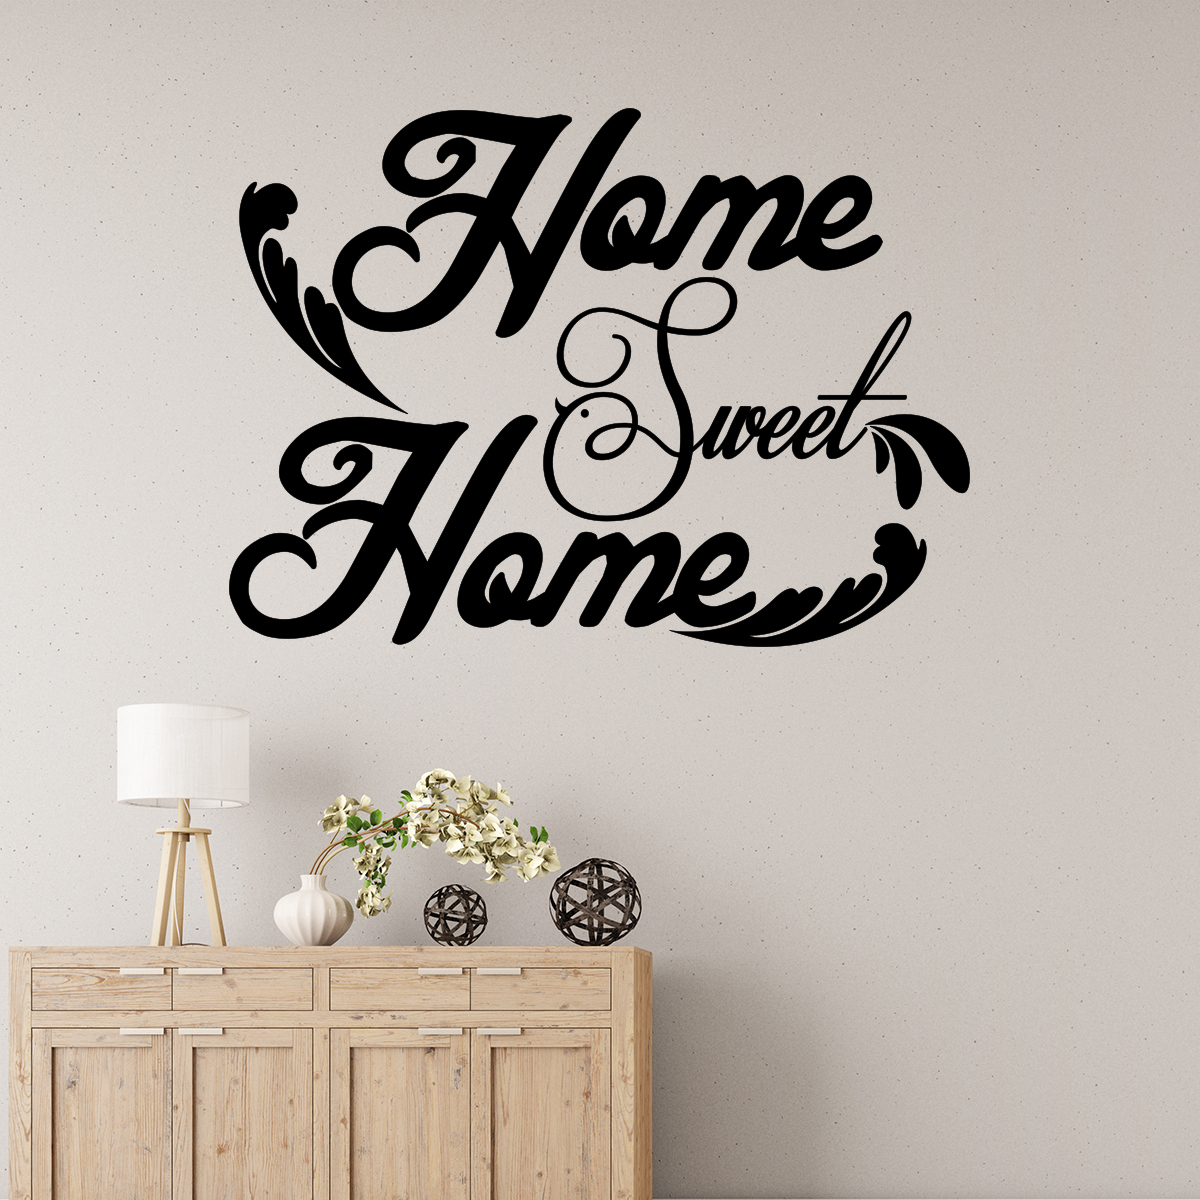 sticker home sweet home avec feuilles stickers citations anglais ambiance sticker. Black Bedroom Furniture Sets. Home Design Ideas